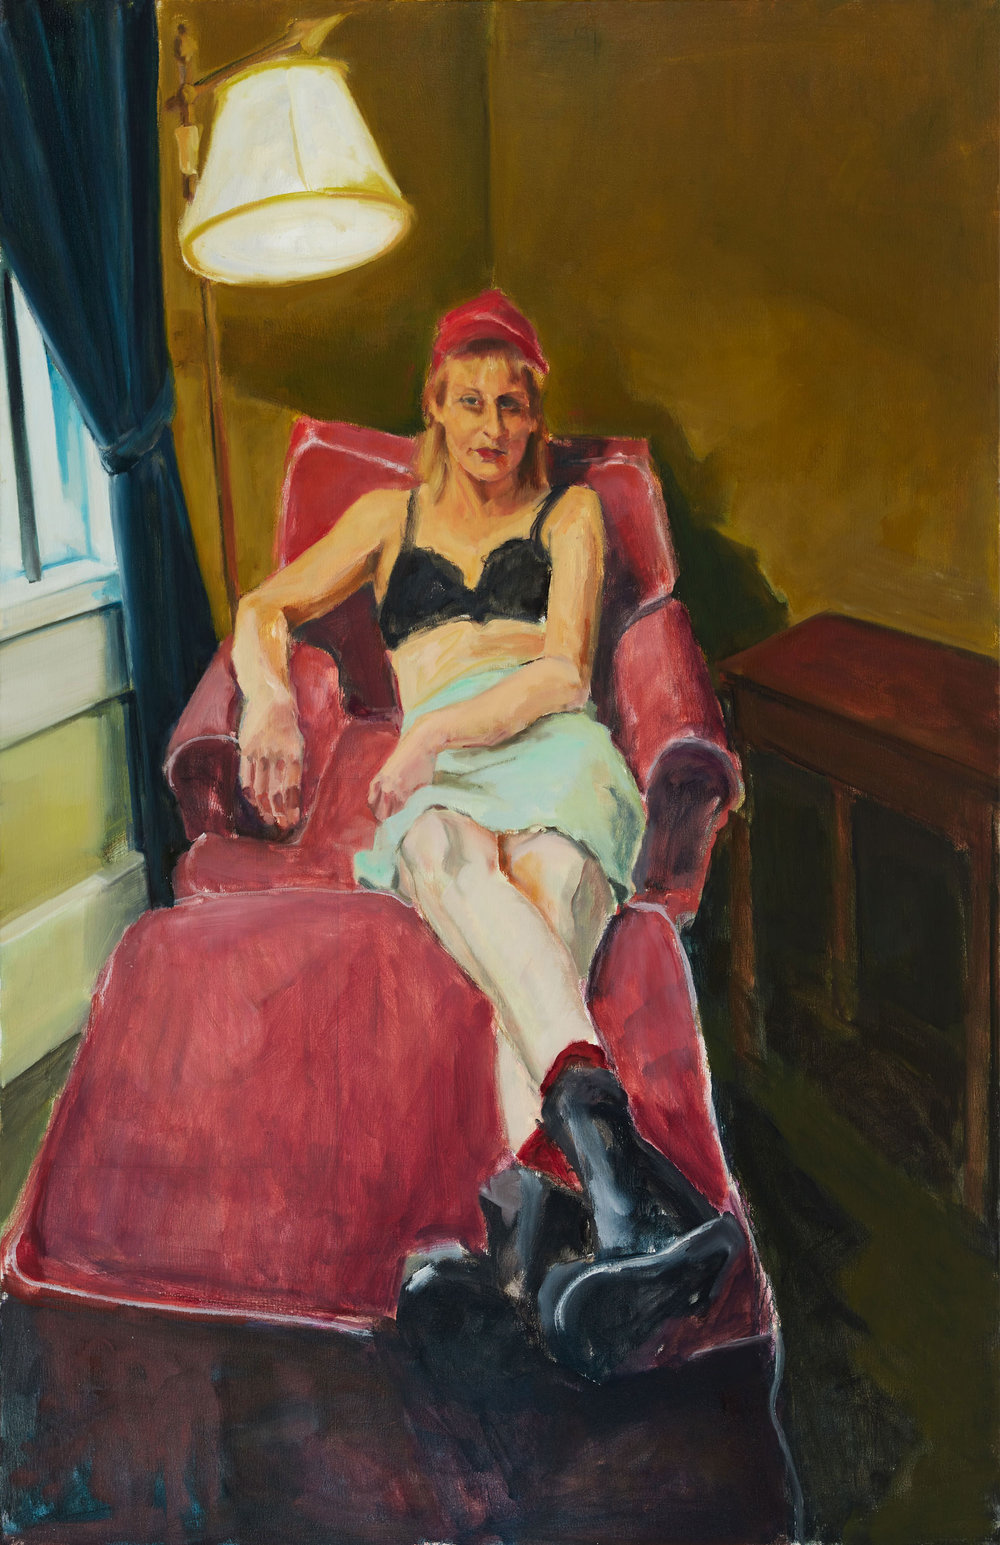 Woman on Red Chair 2016, Oil on canvas, 50 x 42 in.